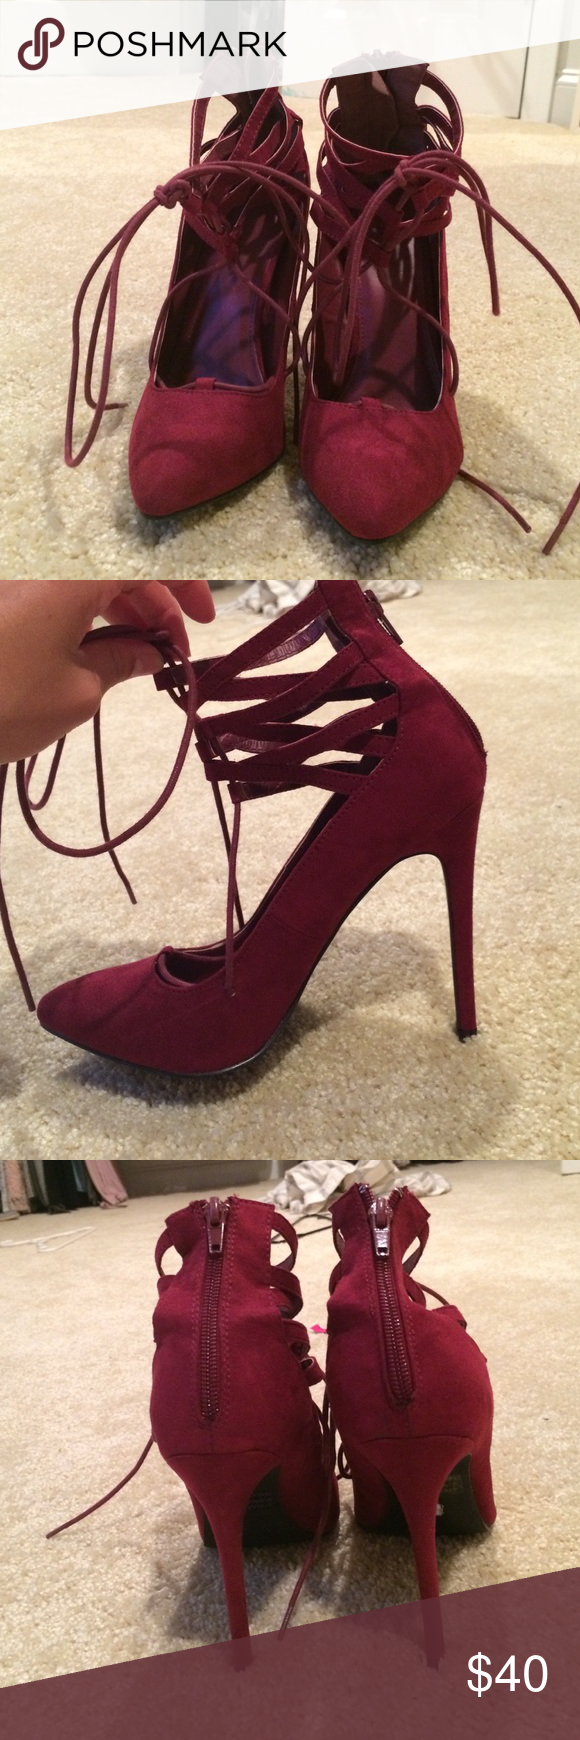 3f584fbde8d Strappy heels Burgundy red wine colored heels with a zipper back for easy  entry and exit. Can be tied in front of the leg(as shown) or behind based on  ...